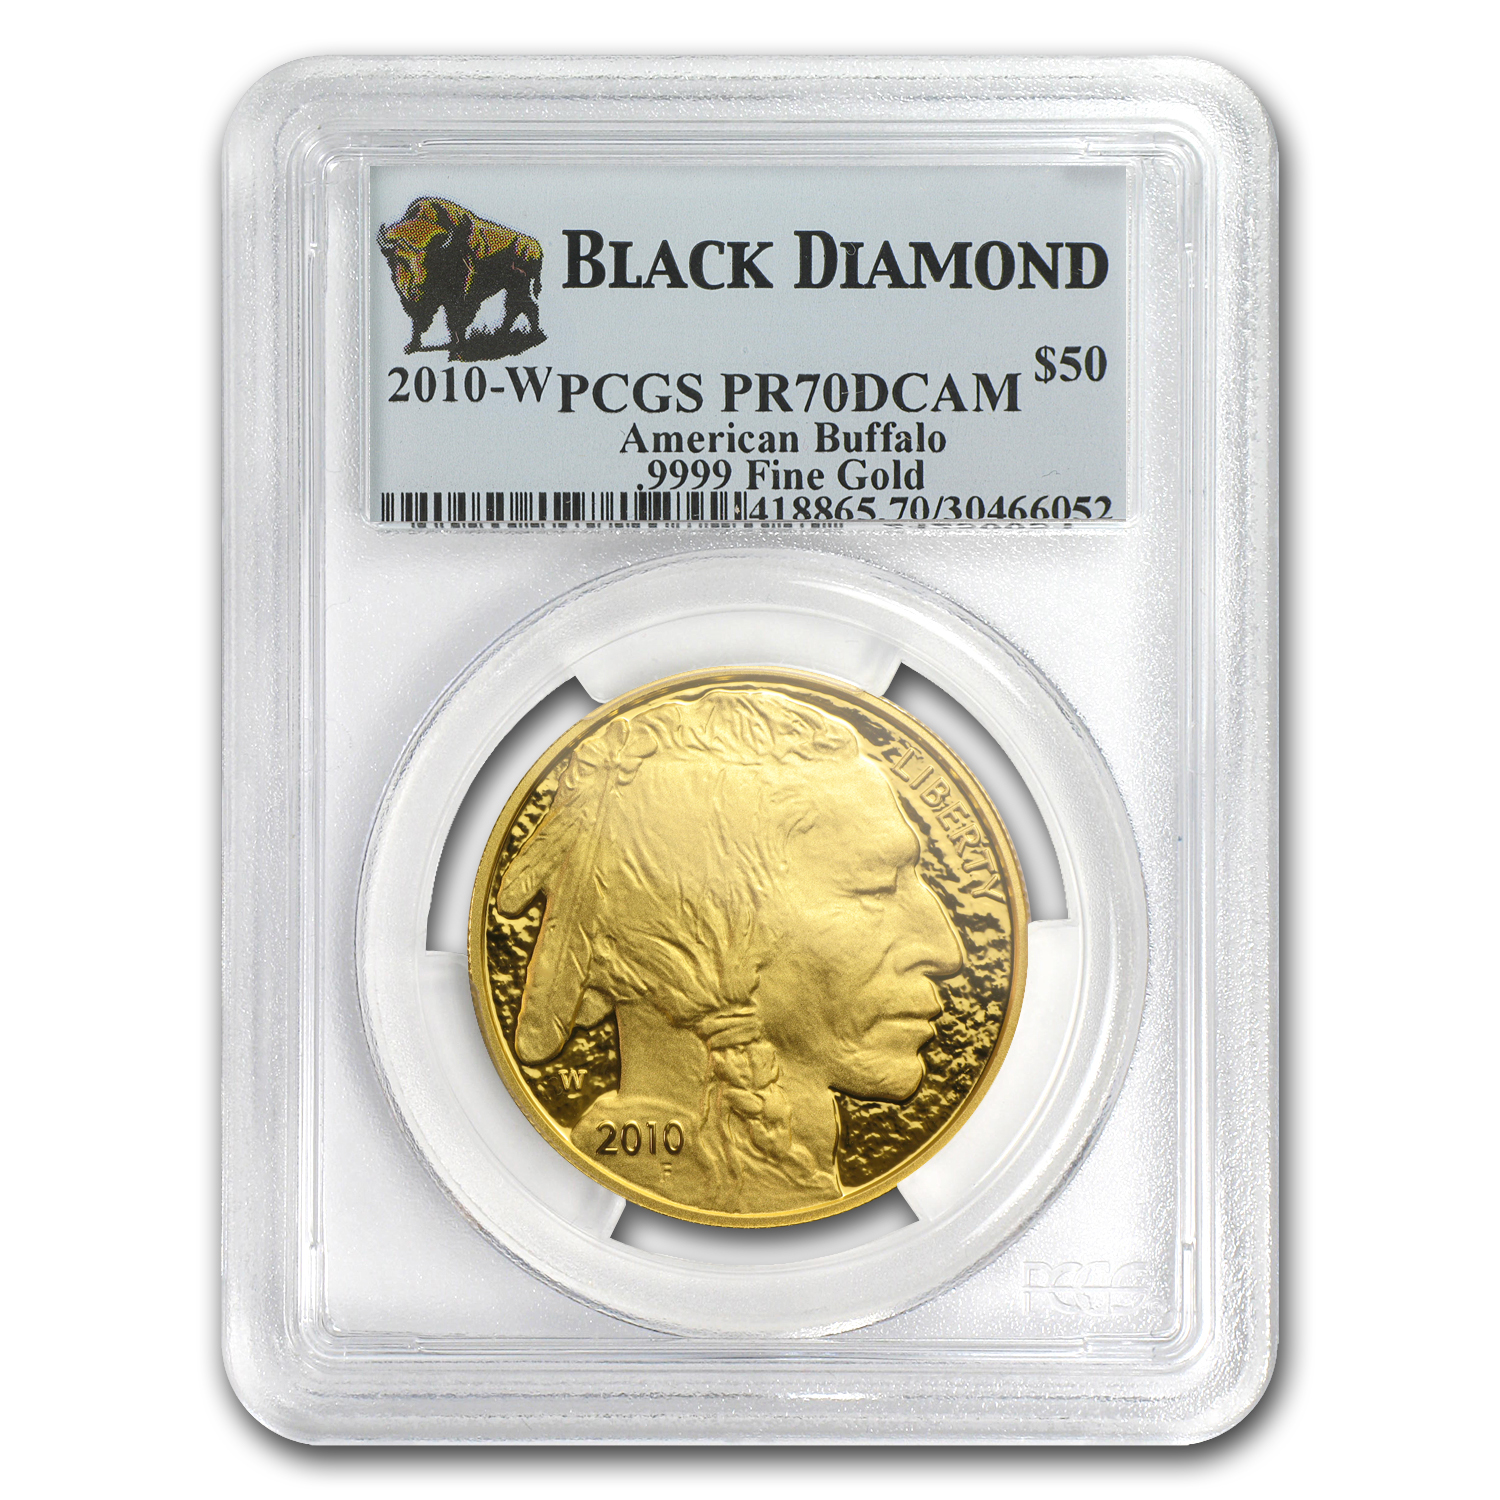 2010-W 1 oz Proof Gold Buffalo PR-70 PCGS (Black Diamond)